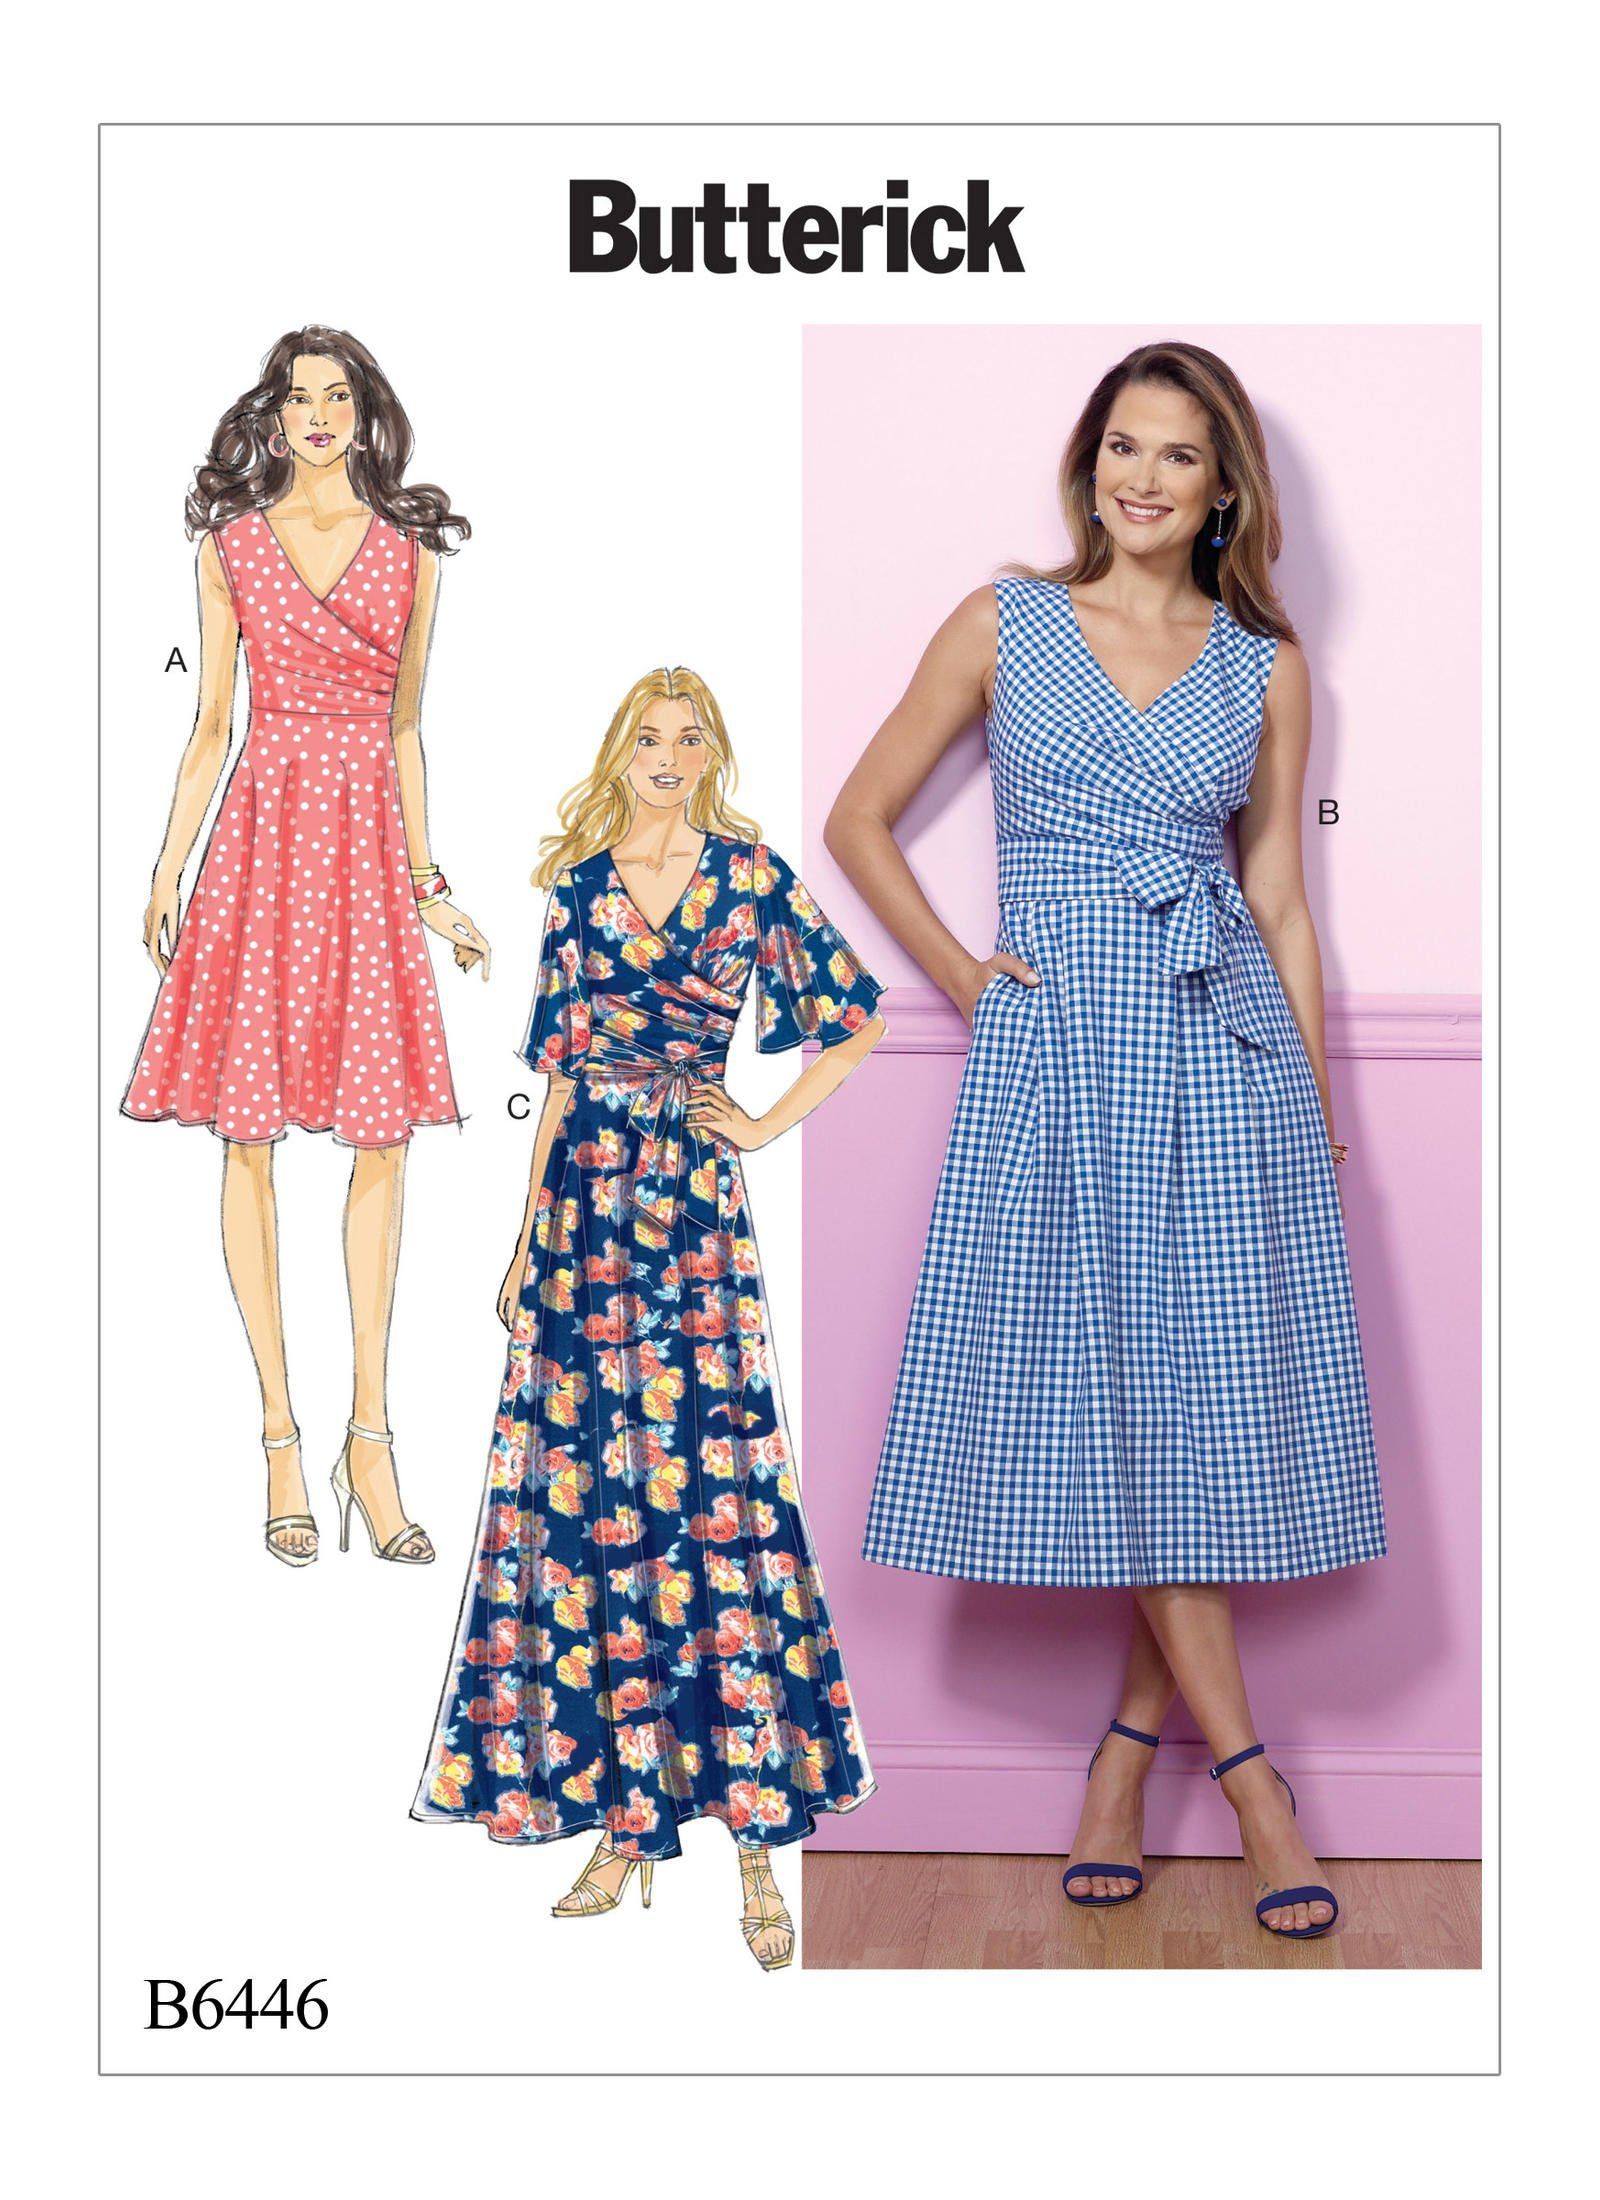 Butterick 6446 misses pleated wrap dresses with sash dress butterick 6446 misses pleated wrap dresses with sash clothes patternssewing jeuxipadfo Choice Image